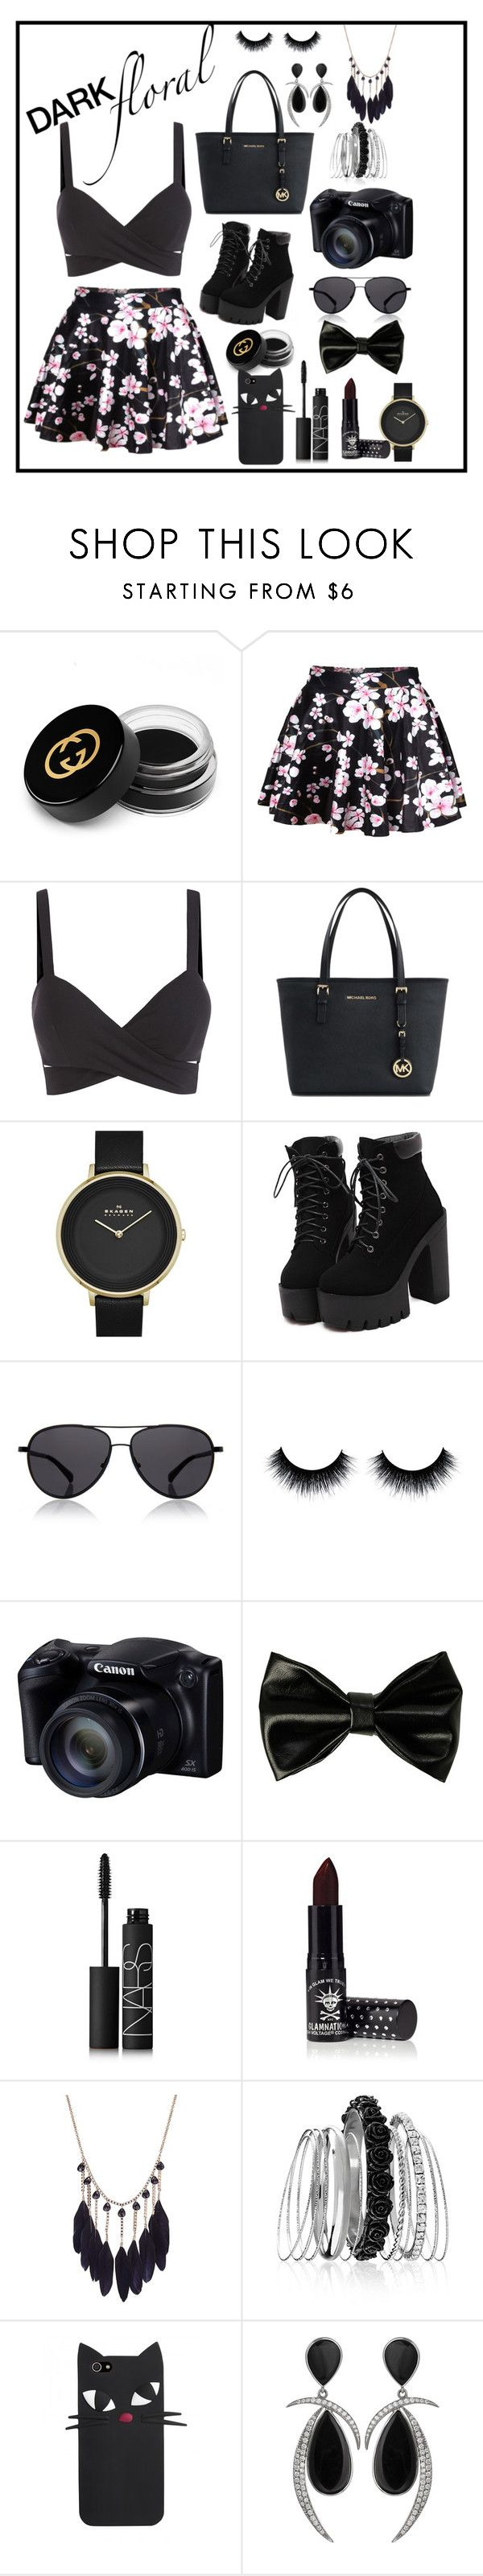 """DARK floral"" by bailywyatt ❤ liked on Polyvore featuring Gucci, Michael Kors, Skagen, The Row, NARS Cosmetics, Manic Panic, Avenue and Jorge Adeler"